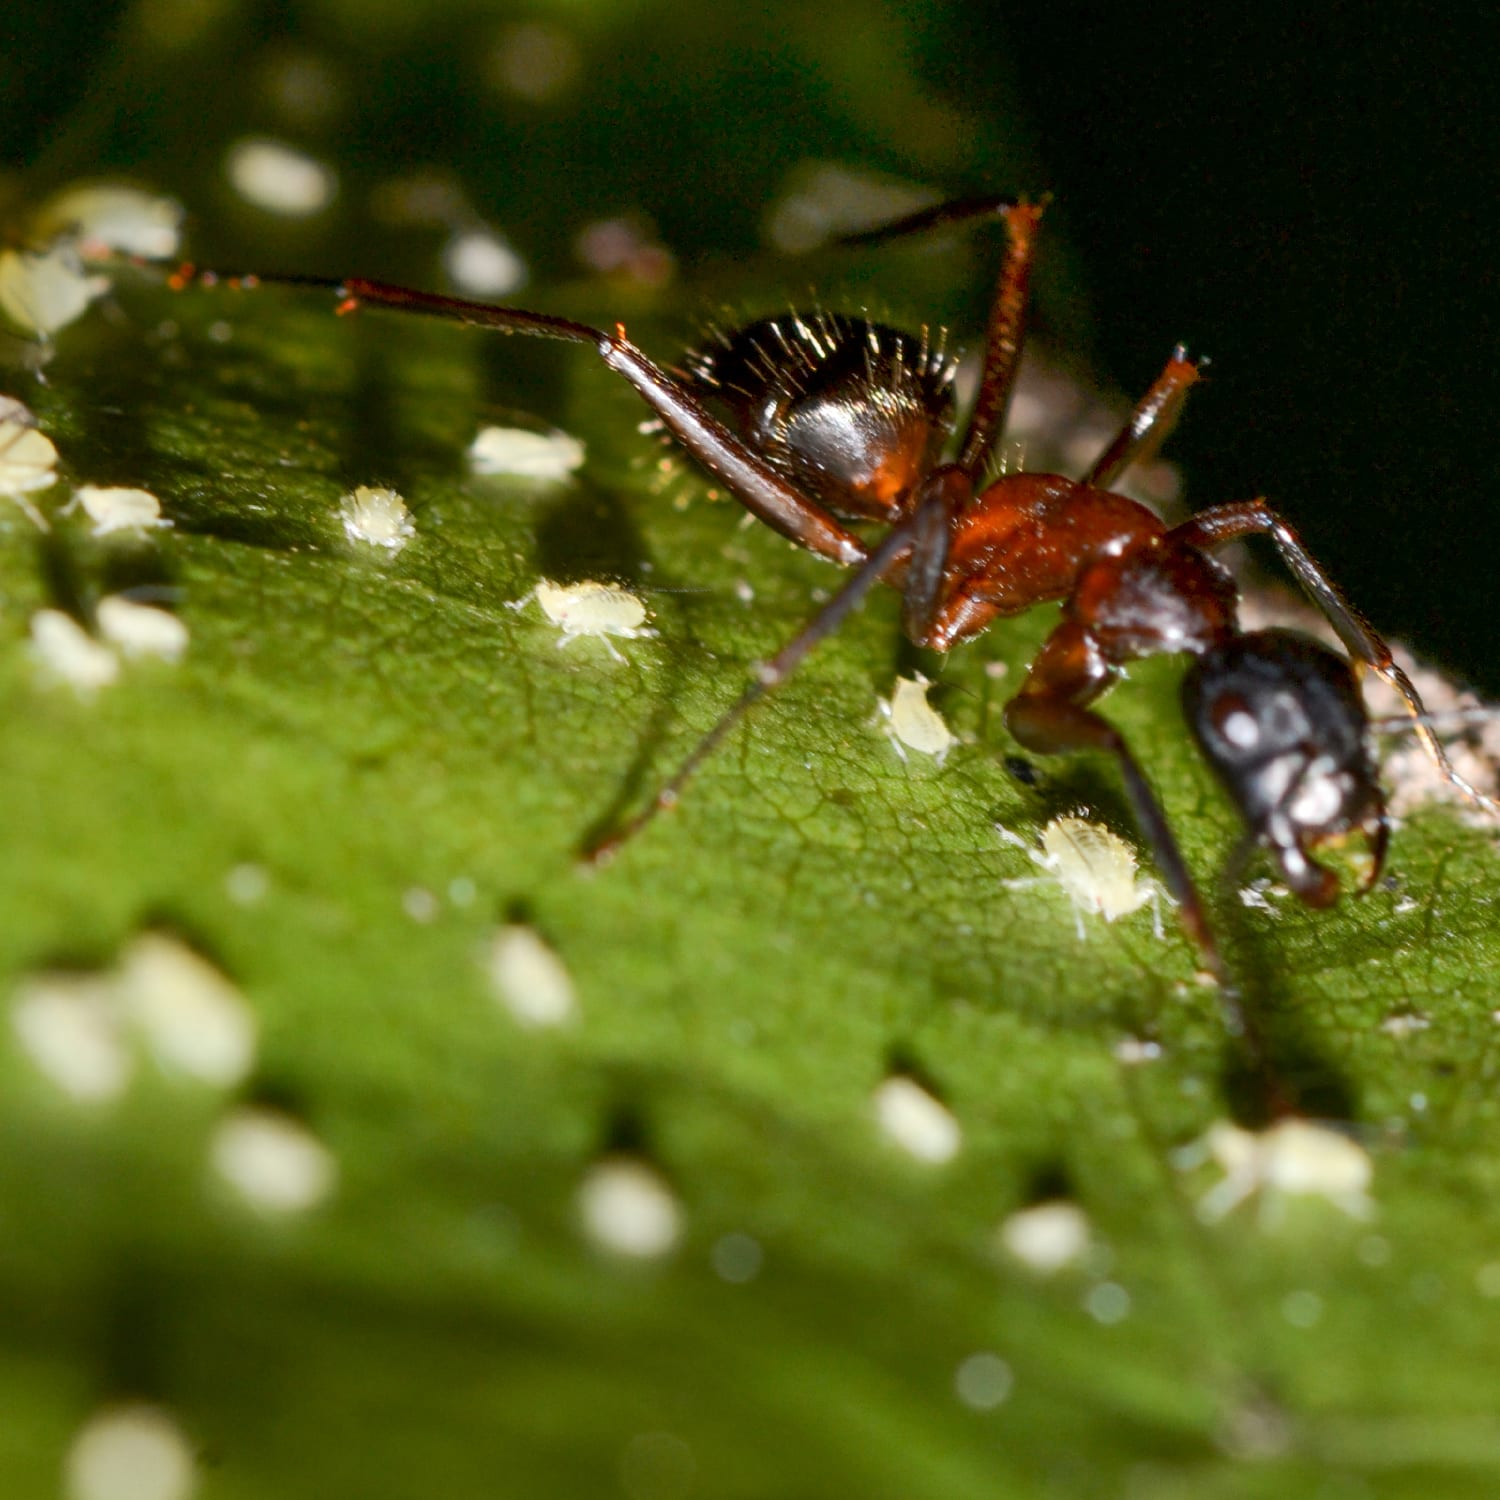 The Aphid Feeds on Plant Life